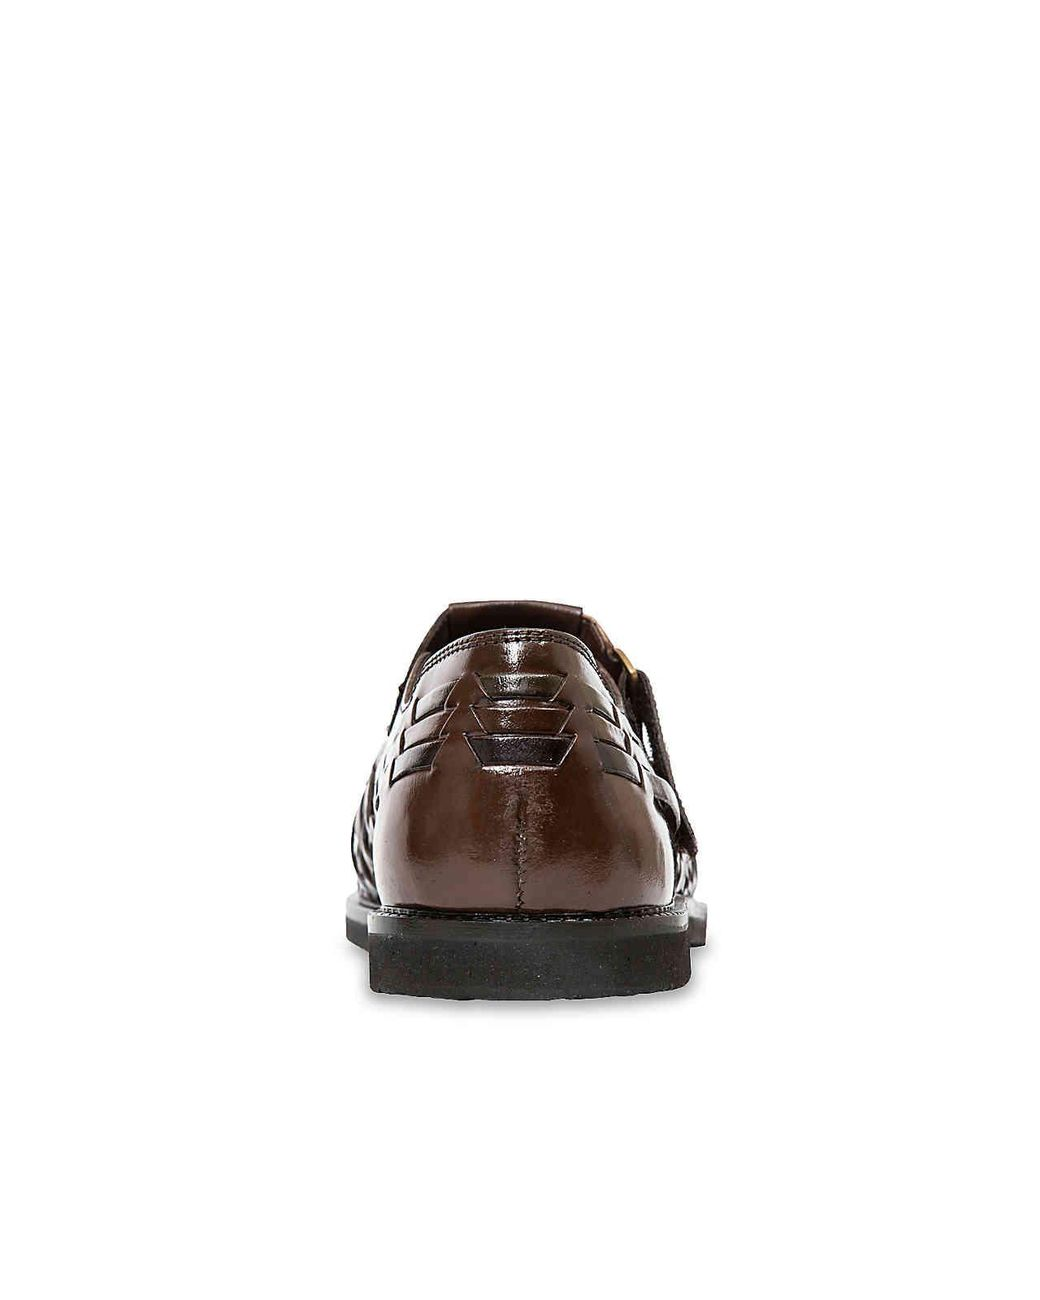 edc9f3e691a0a Lyst - Deer Stags Bamboo 2 Huarache Sandal in Brown for Men